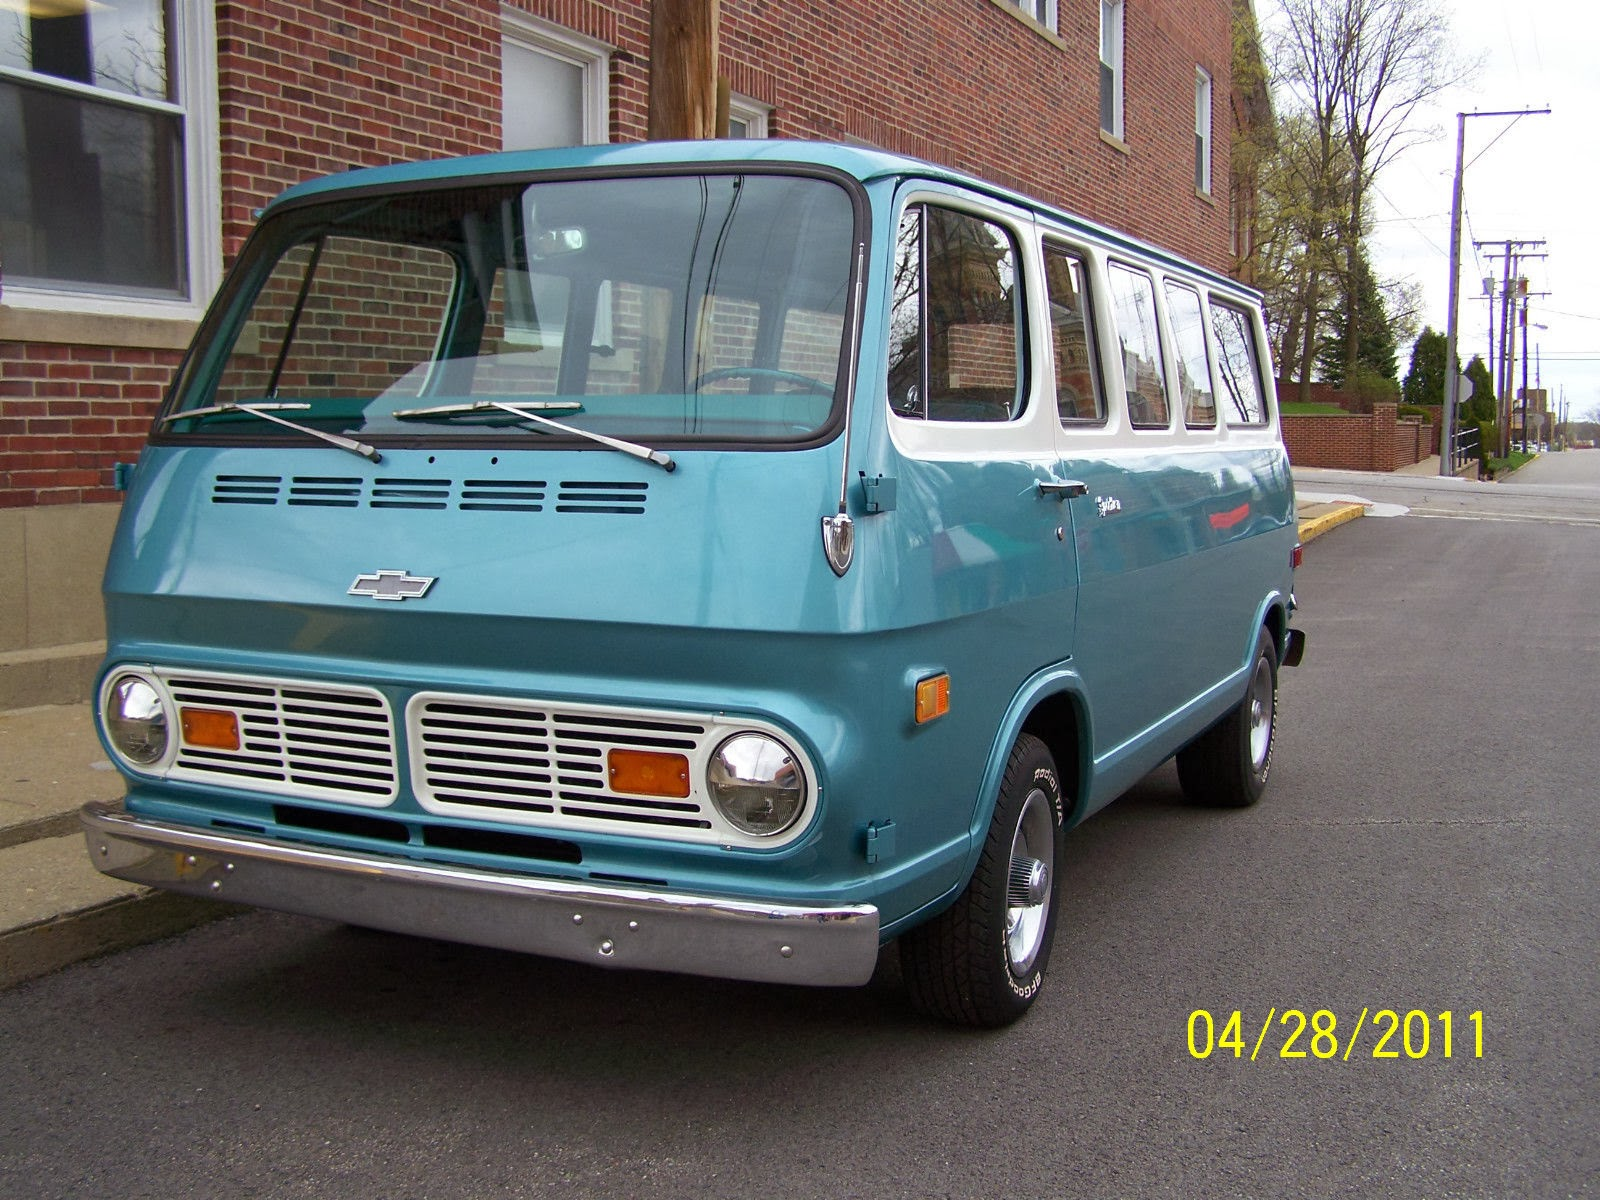 1969 Chevy Van Craigslist | Autos Post